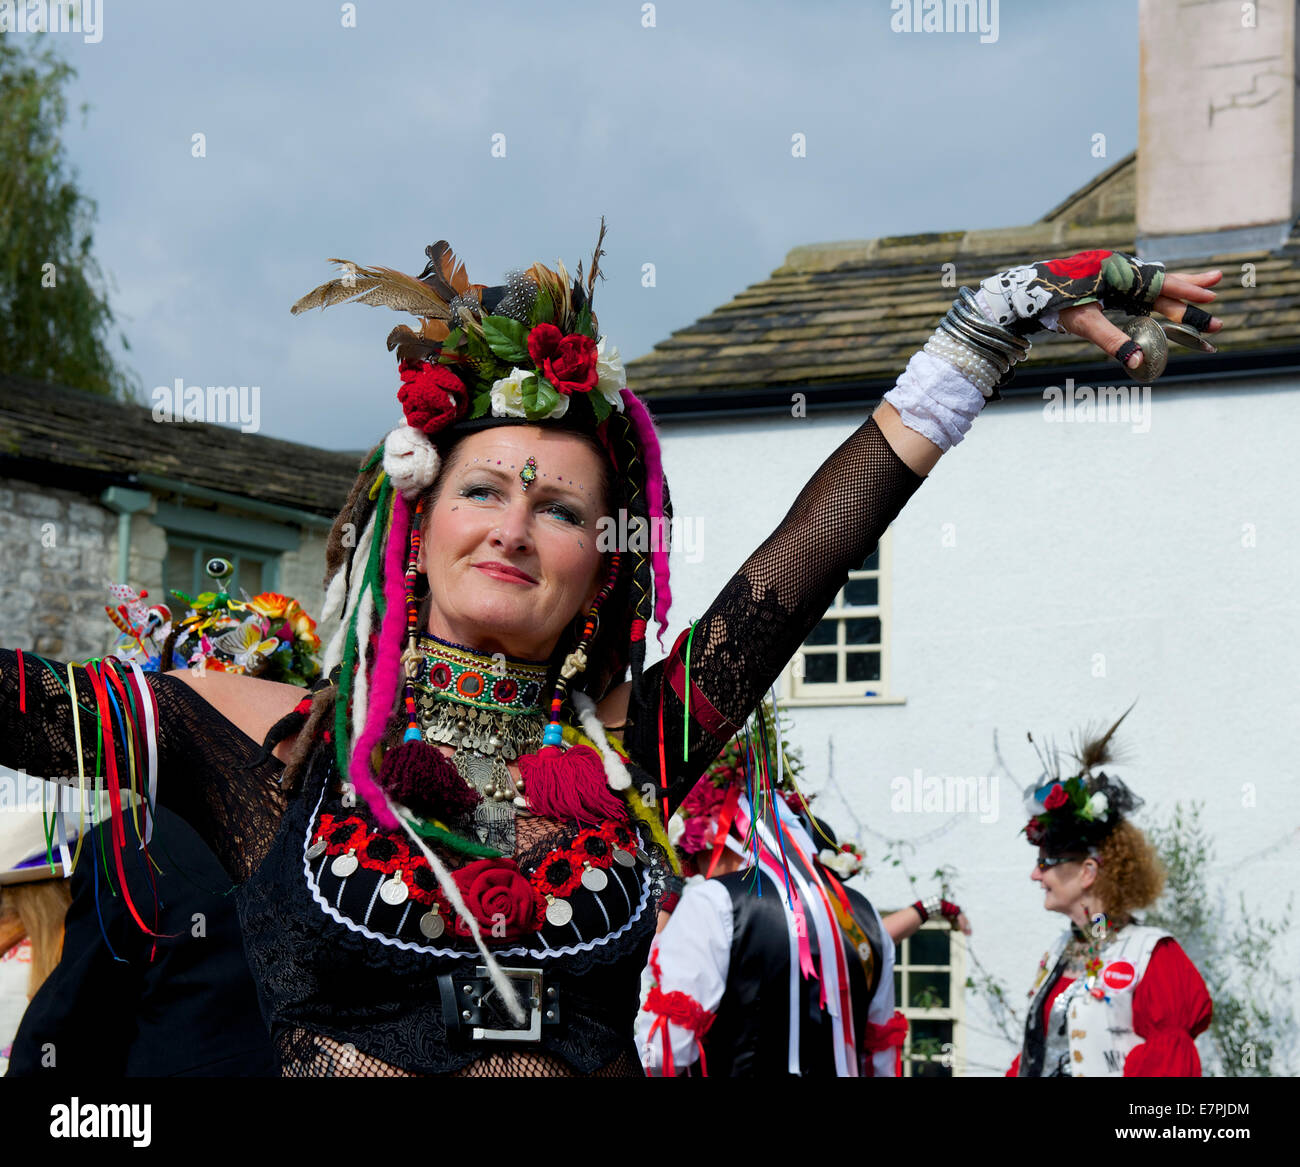 Member of the 400 Roses dance troupe performing at Otley Folk Festival, September 2014 - Stock Image